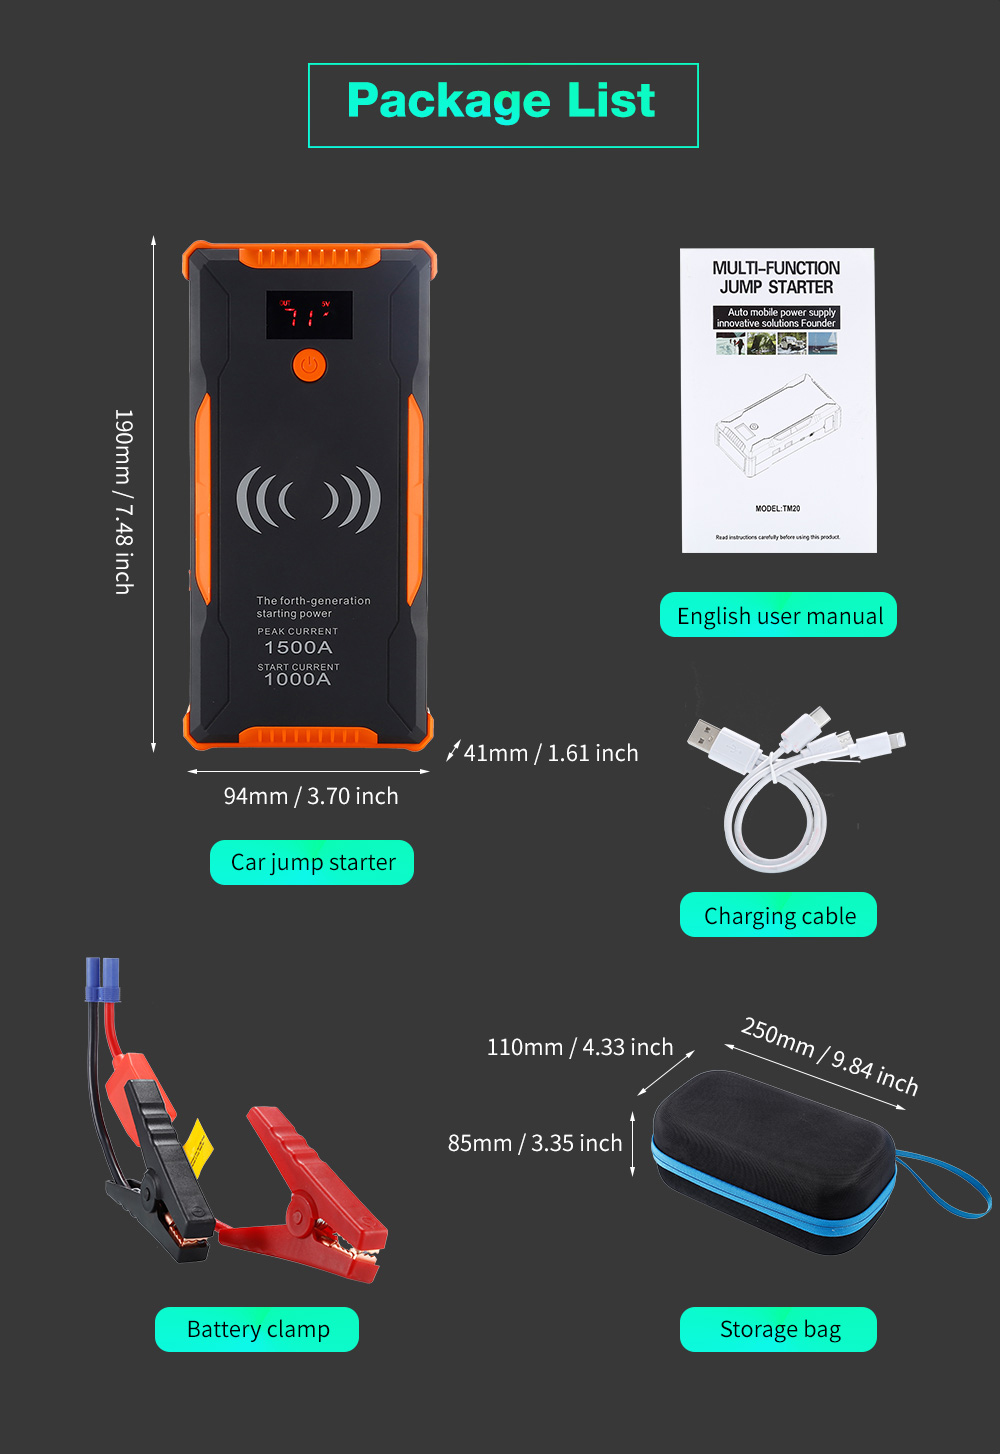 TM20 3 in 1 Portable Car Jump Starter 99900mAh Li-ion Battery 1500A Peak Current 3 Lighting Modes